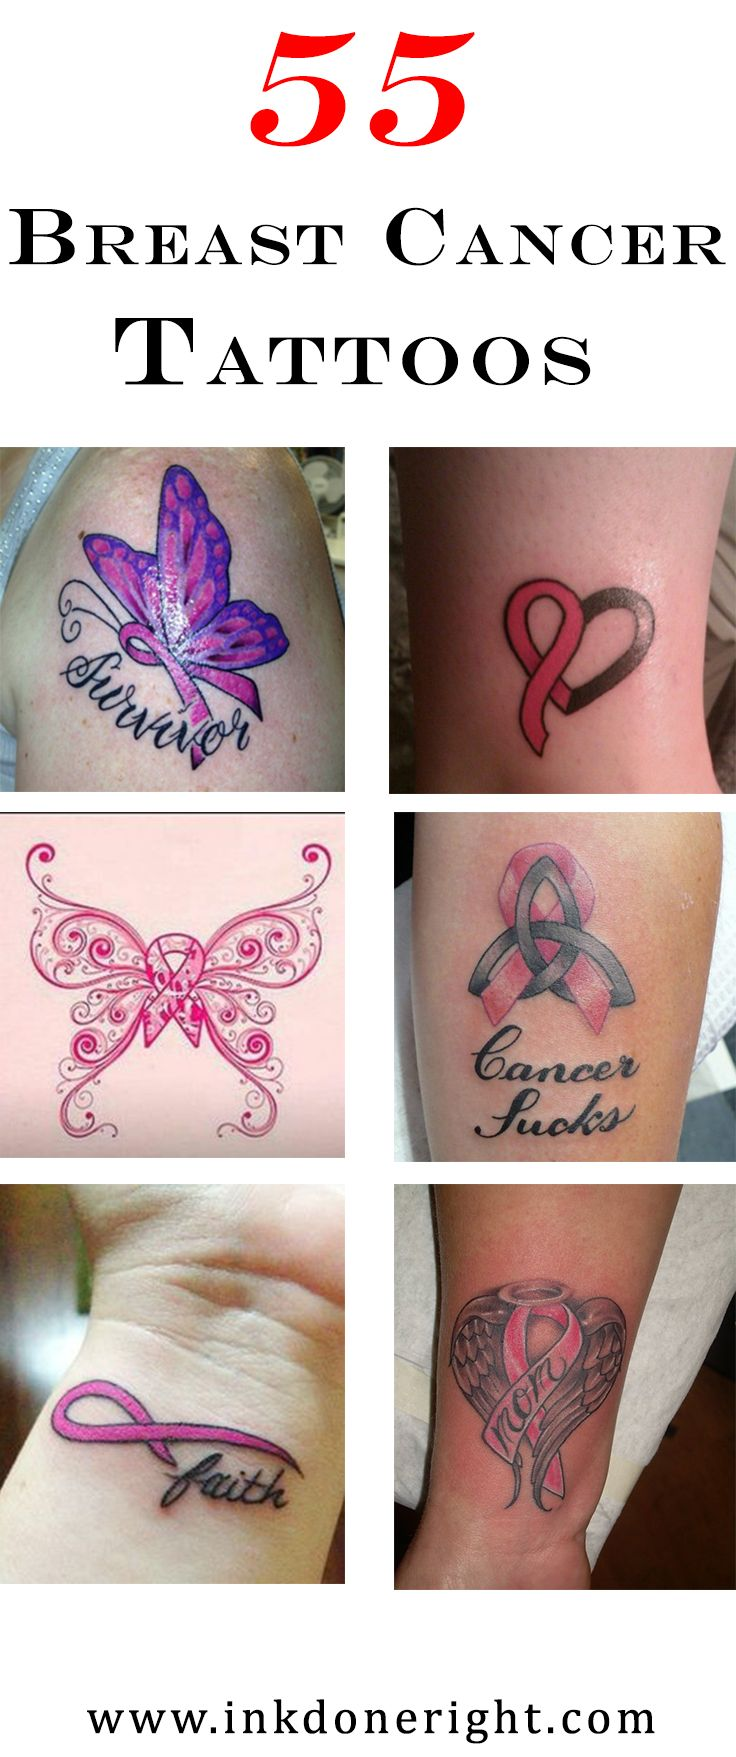 55 Breast Cancer Tattoo Pictures Articles By Inkdoneright